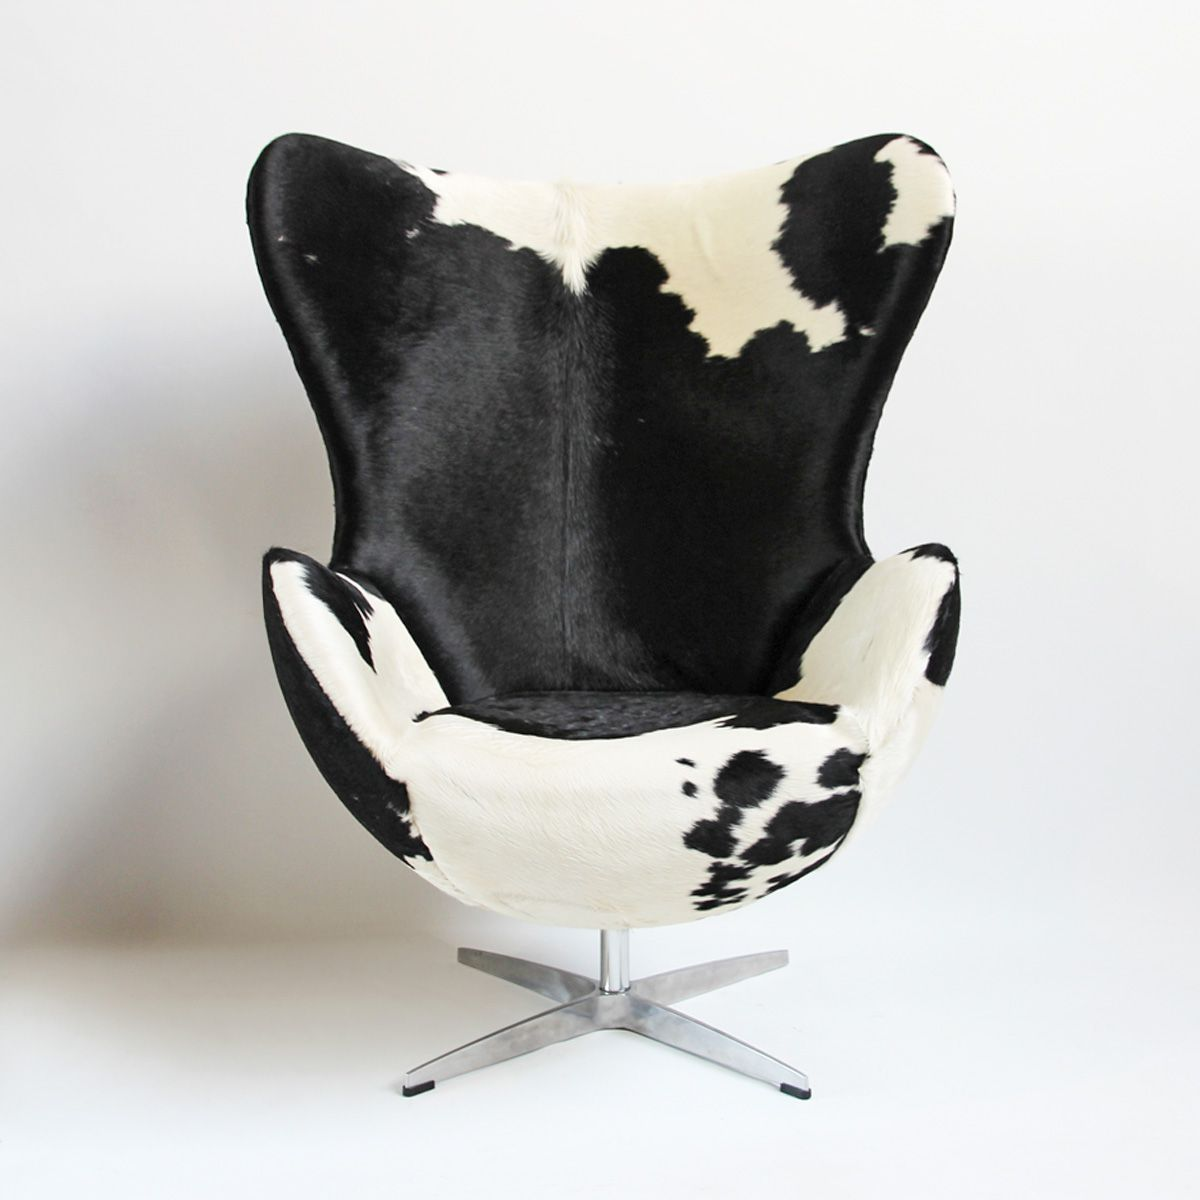 Awesome Check Out Our Chairs At Mix Furniture! Striking Black And White Cow Hide  Upholstered Egg